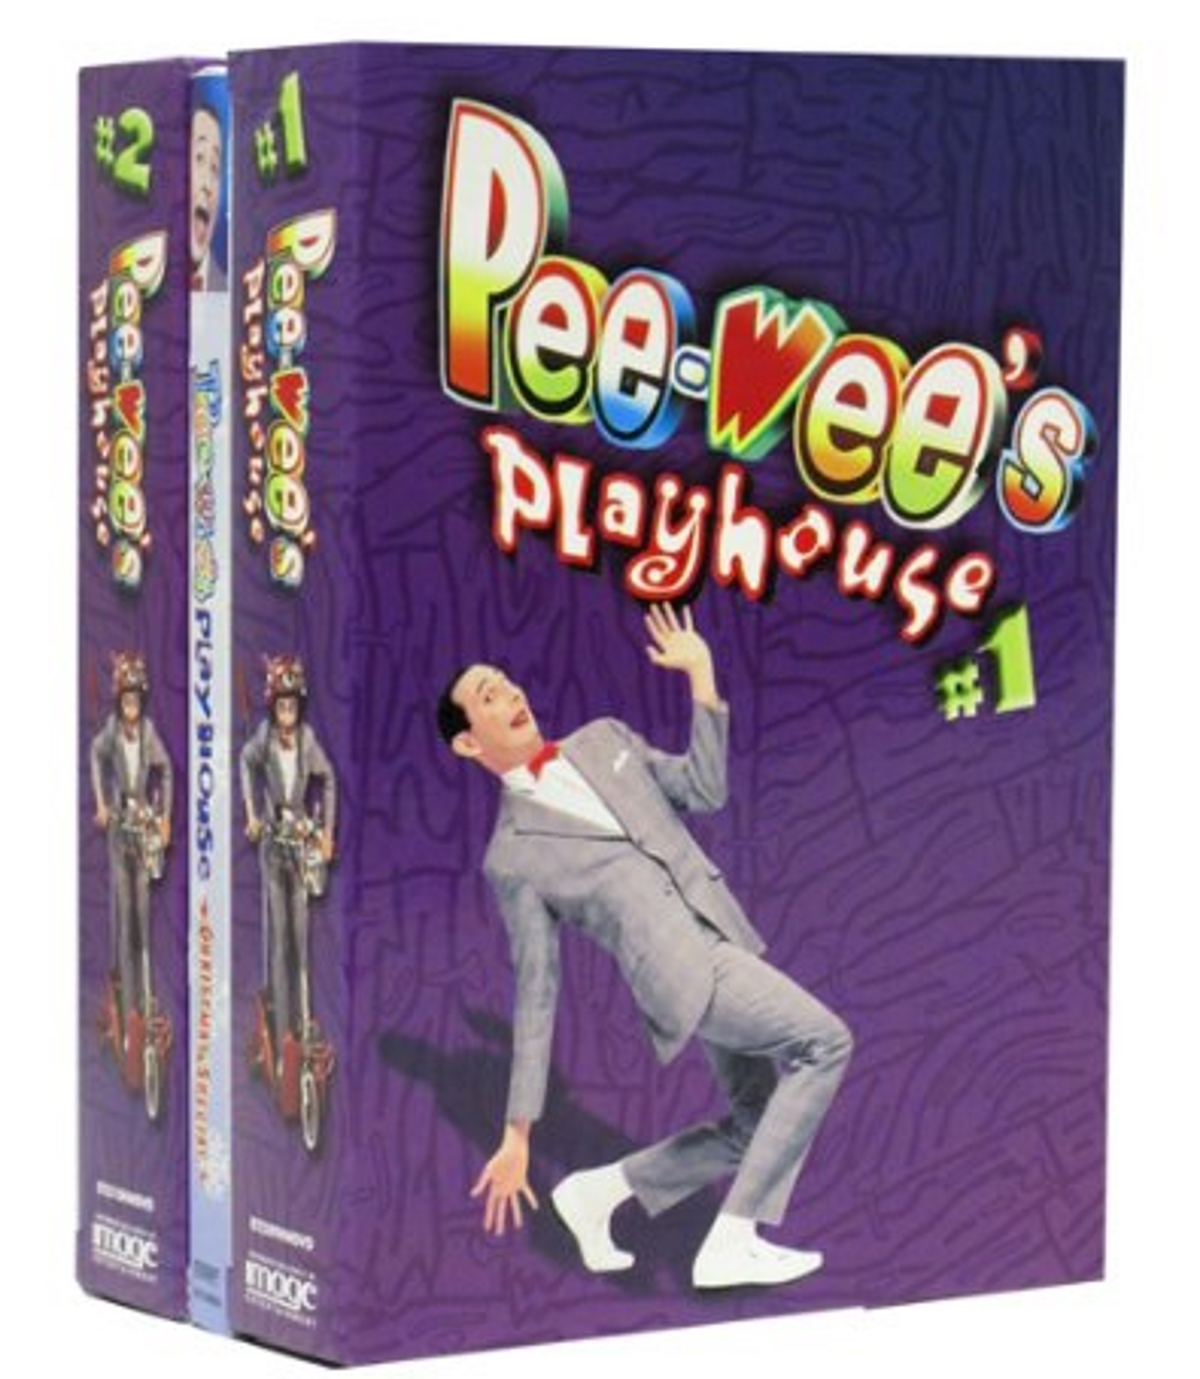 Pee wee s playhouse the complete collection  2010 11 dvd